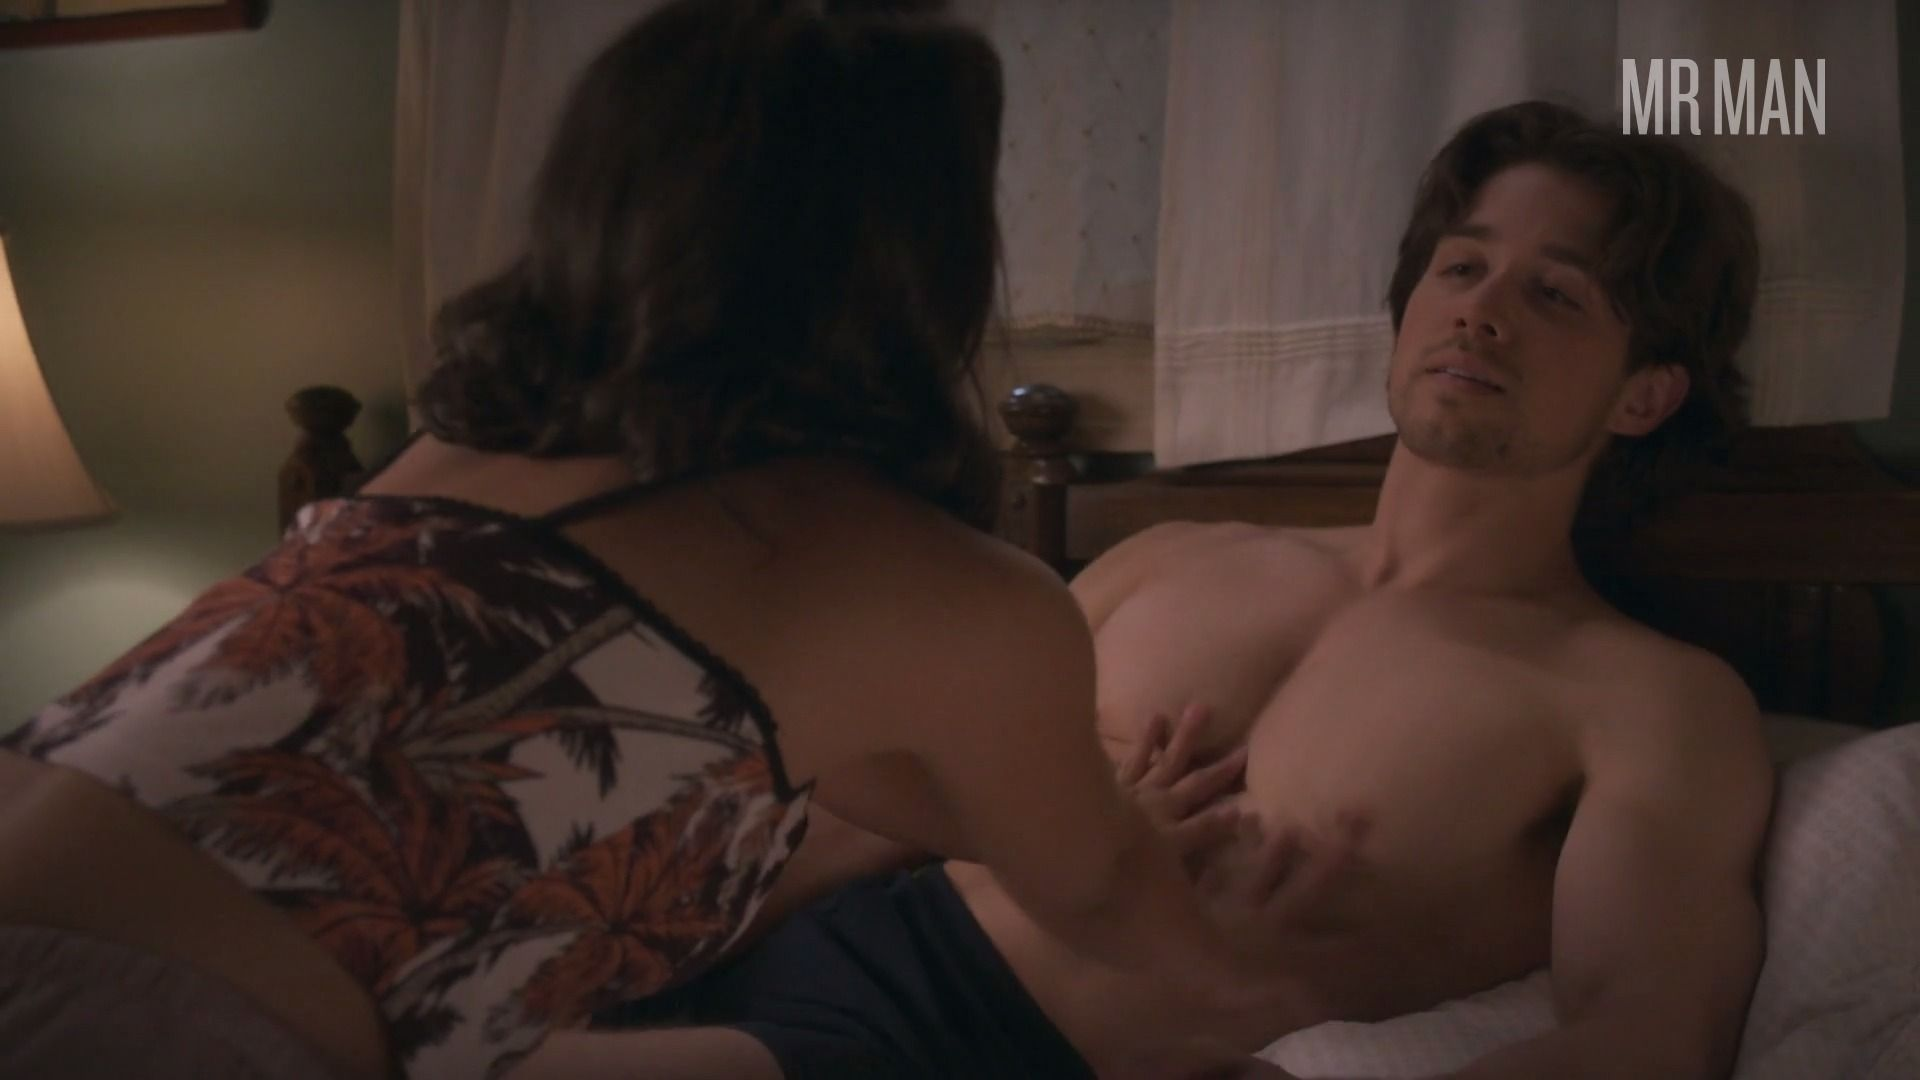 Partyoffive1x04 larracuente hd 01 frame 3 override